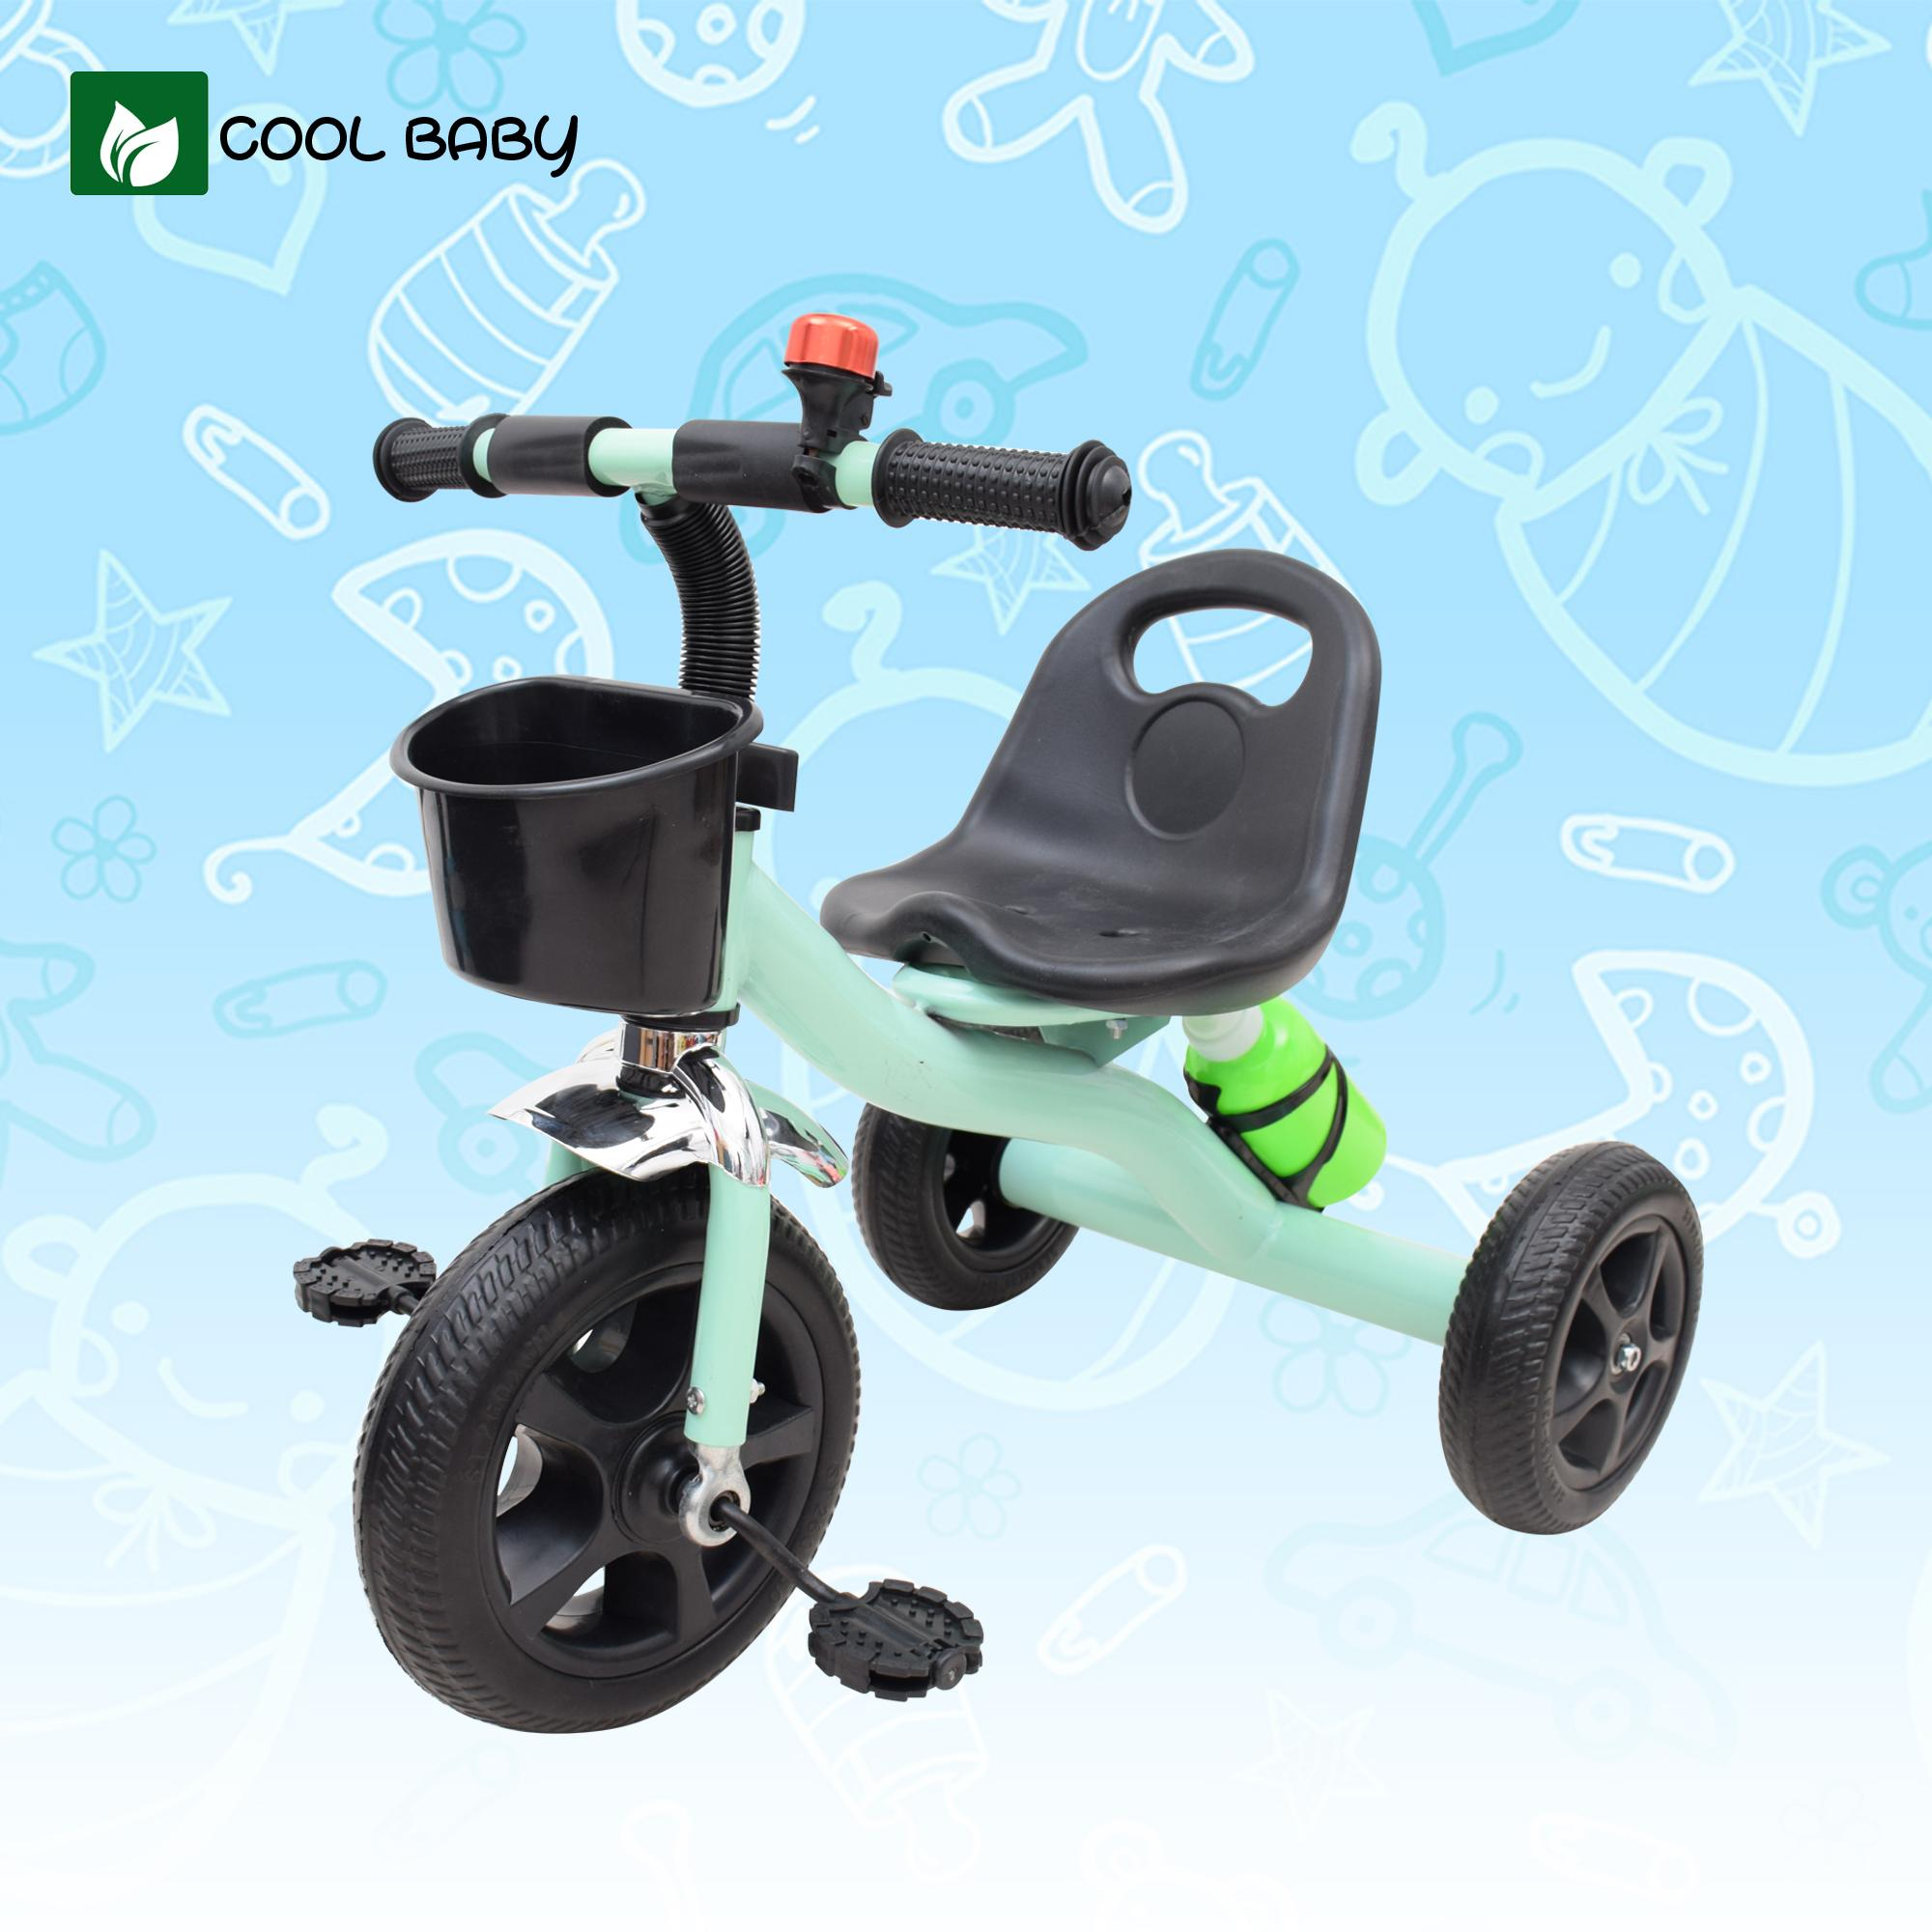 97fffd89e5c Cool Baby 638 Small Bike Kids Tricycle Bike with Front Basket and Water  Bottle